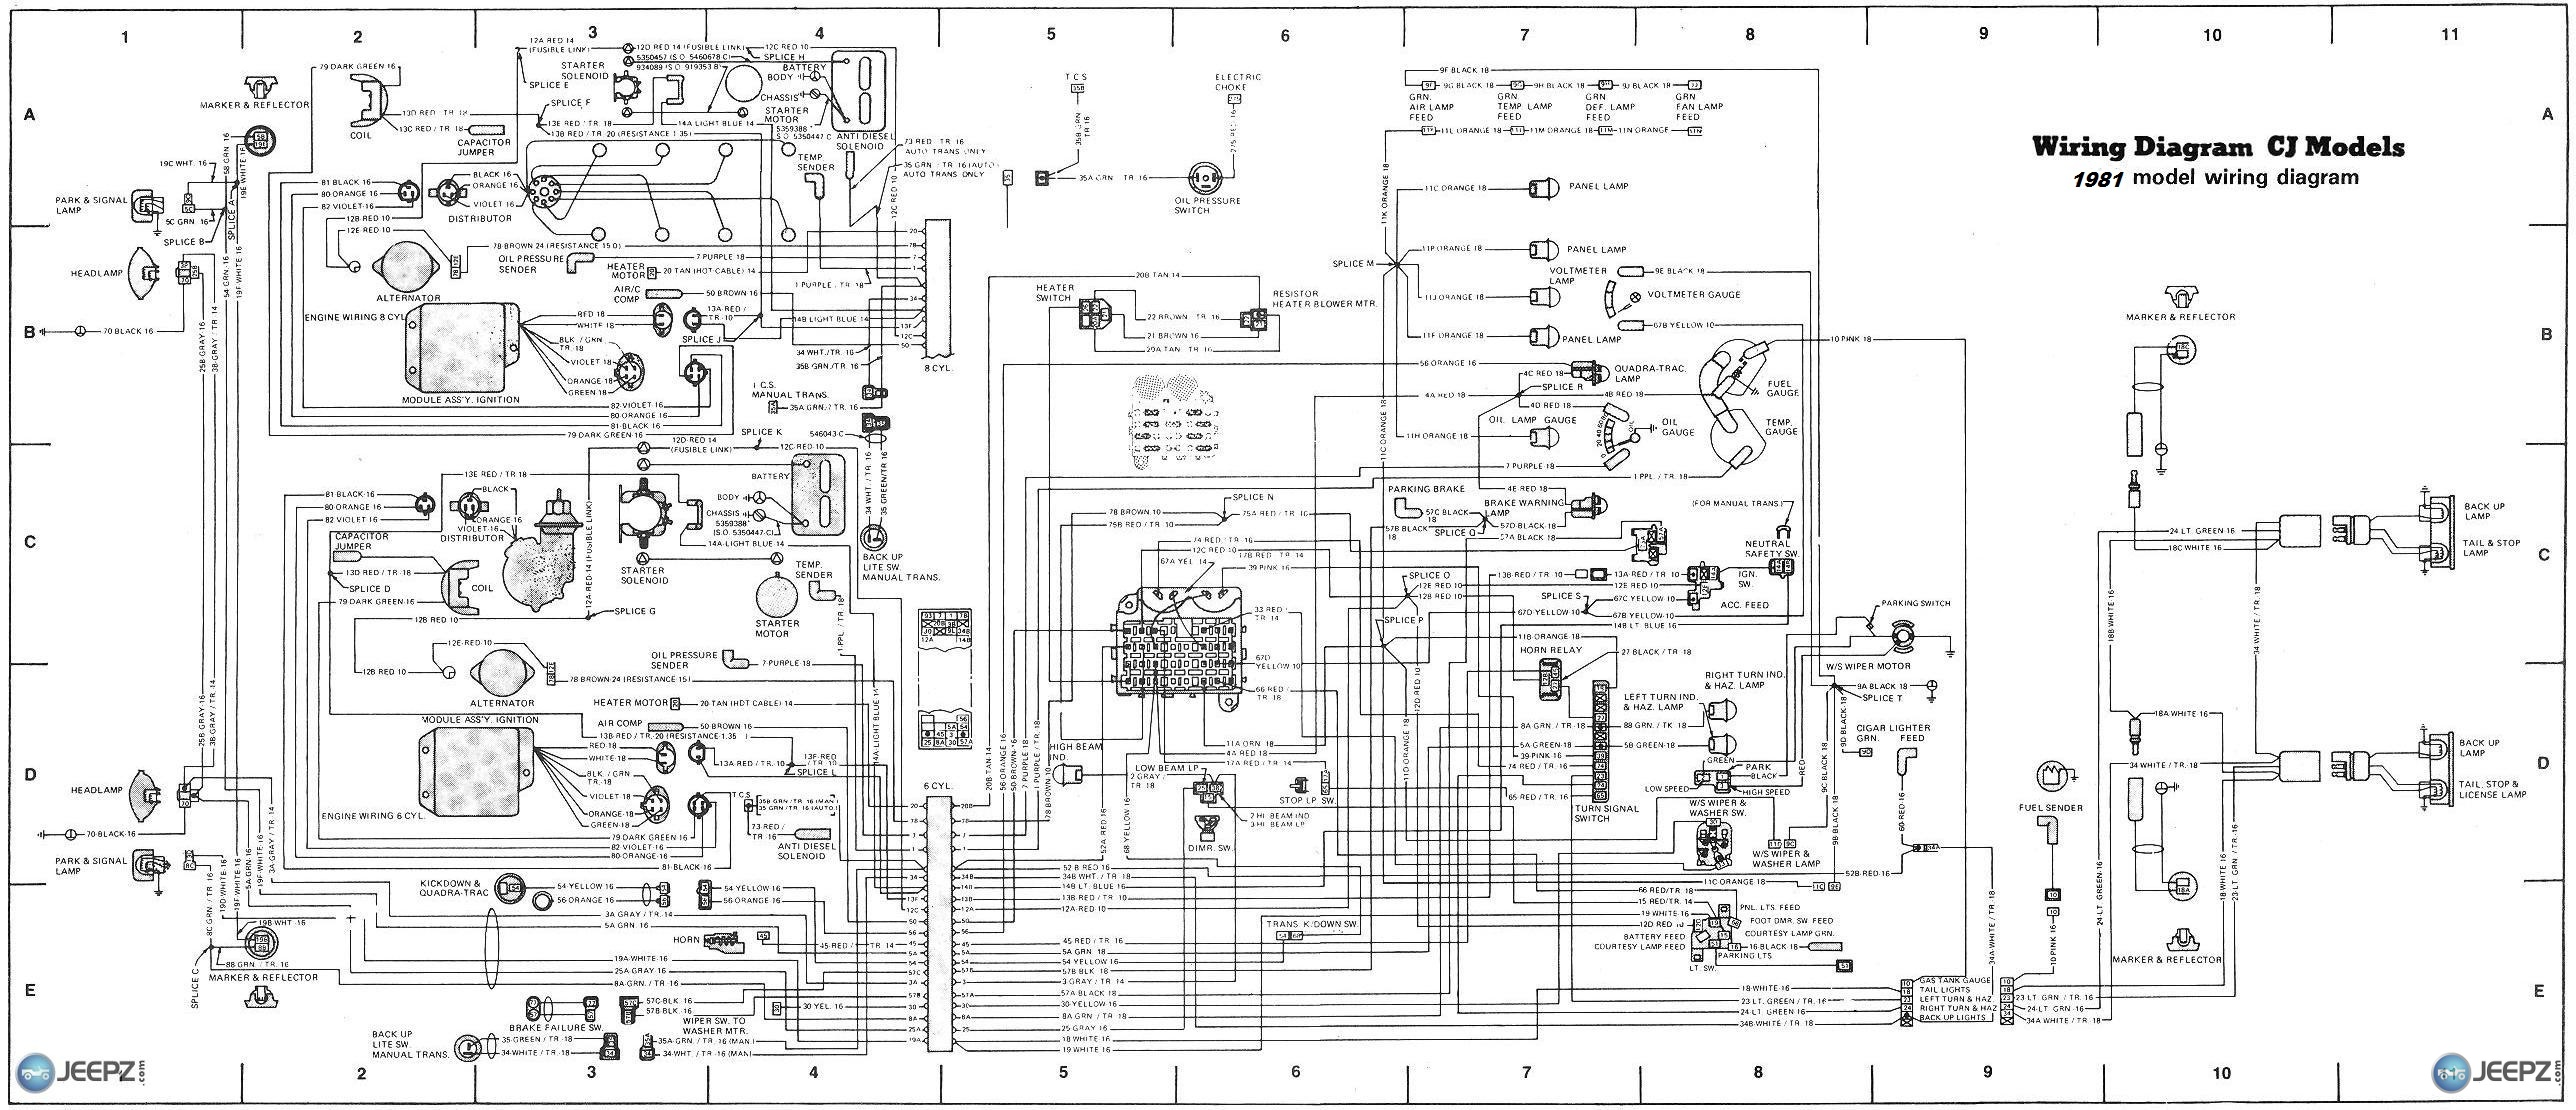 1978 jeep cj 7 wiring diagram walesdebate org uk u2022 rh walesdebate org uk Jeep CJ7 Ignition Wiring Diagram 1983 Jeep CJ7 Wiring-Diagram